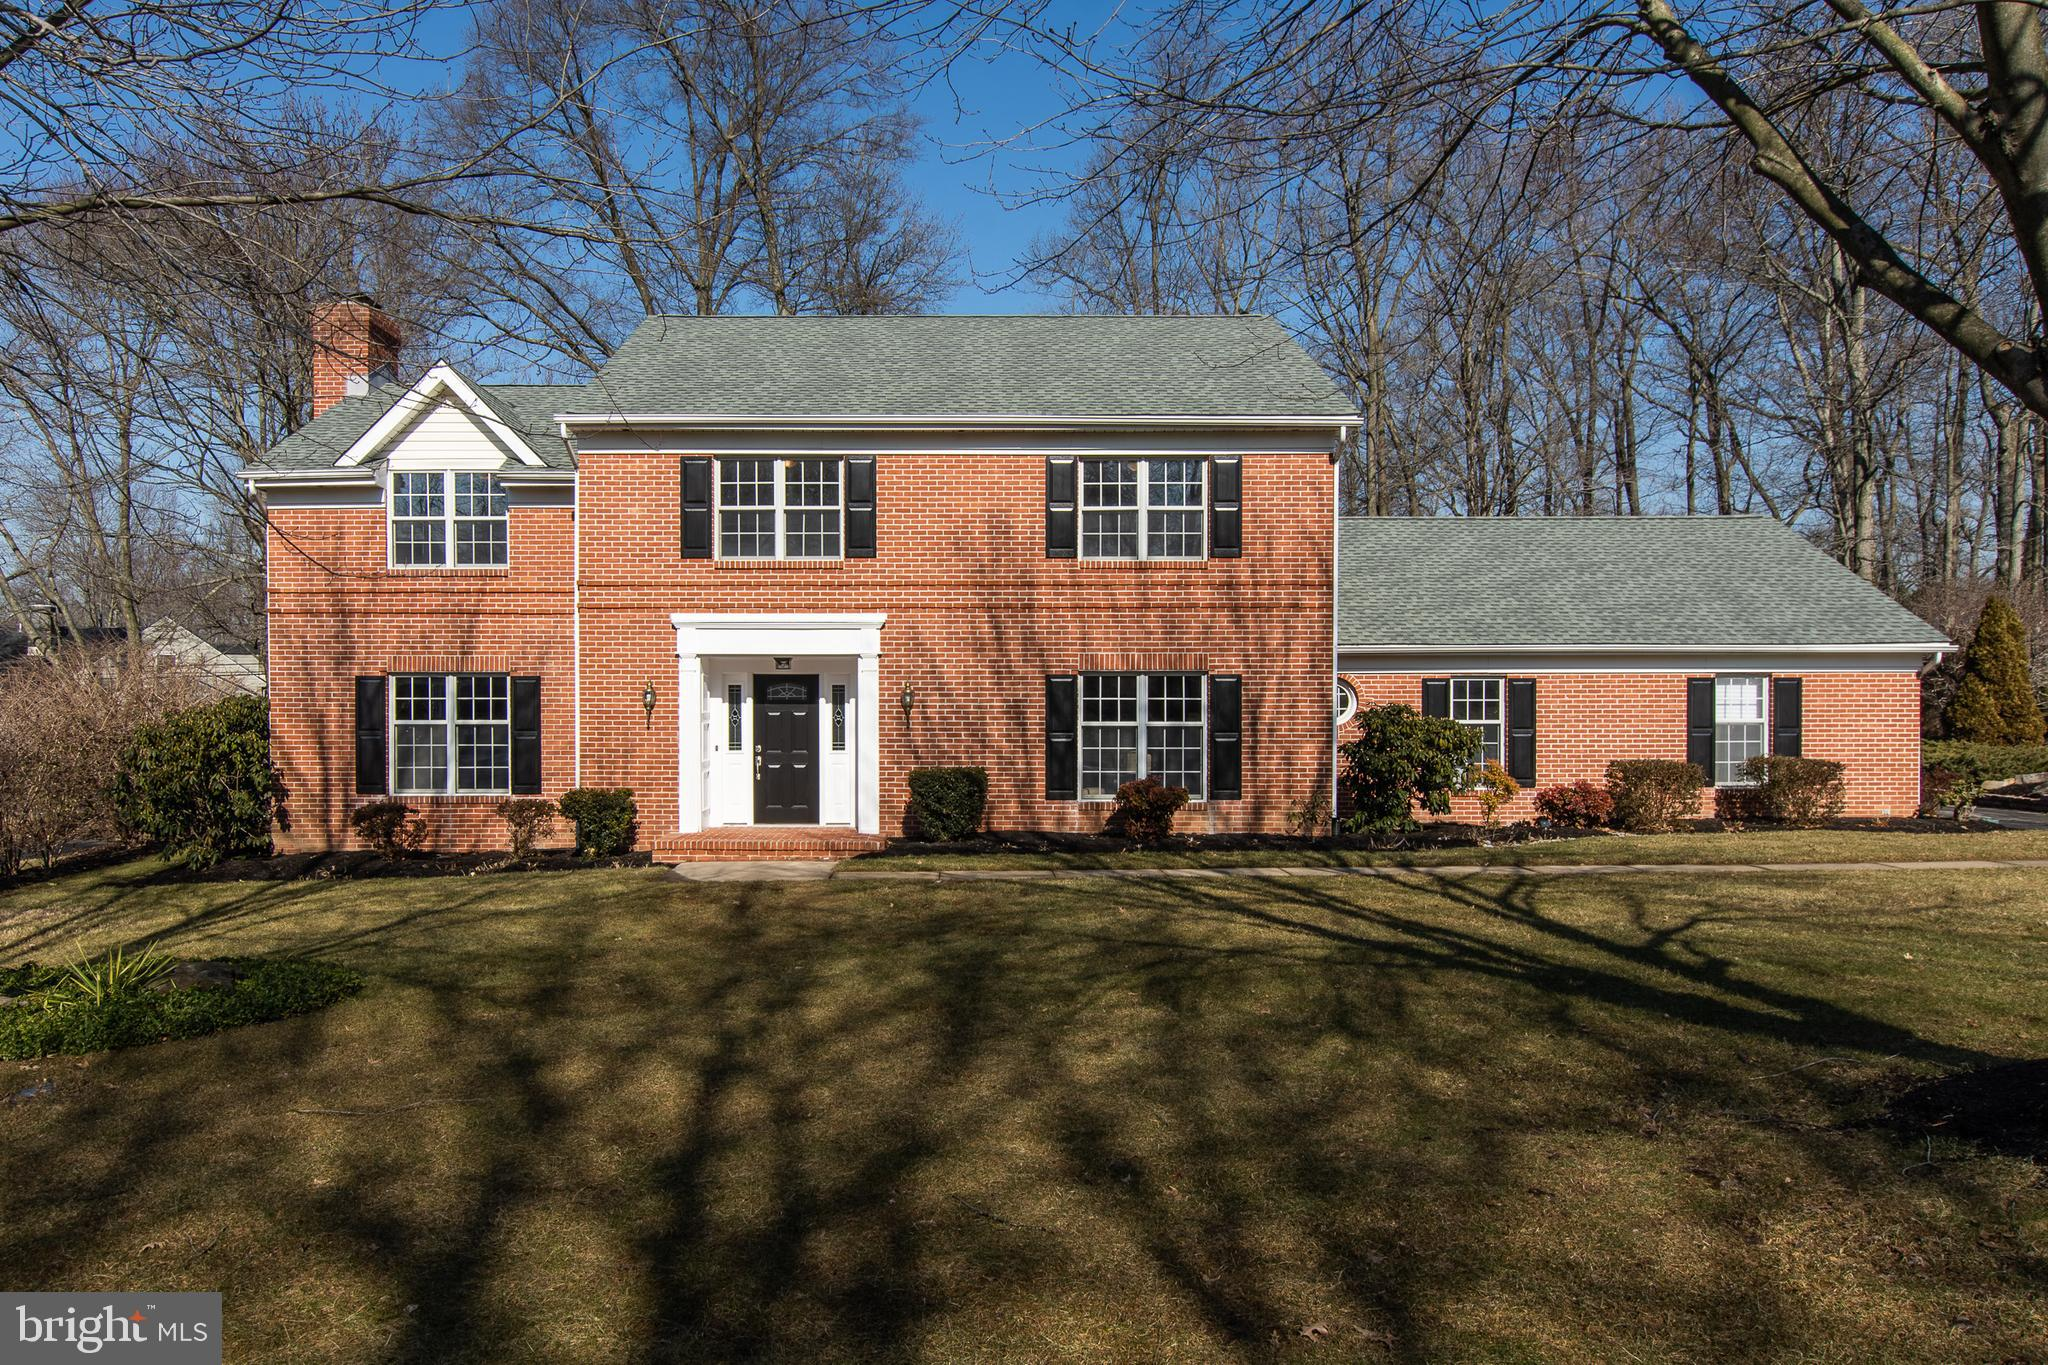 12 CARILLON COURT, WILMINGTON, DE 19803